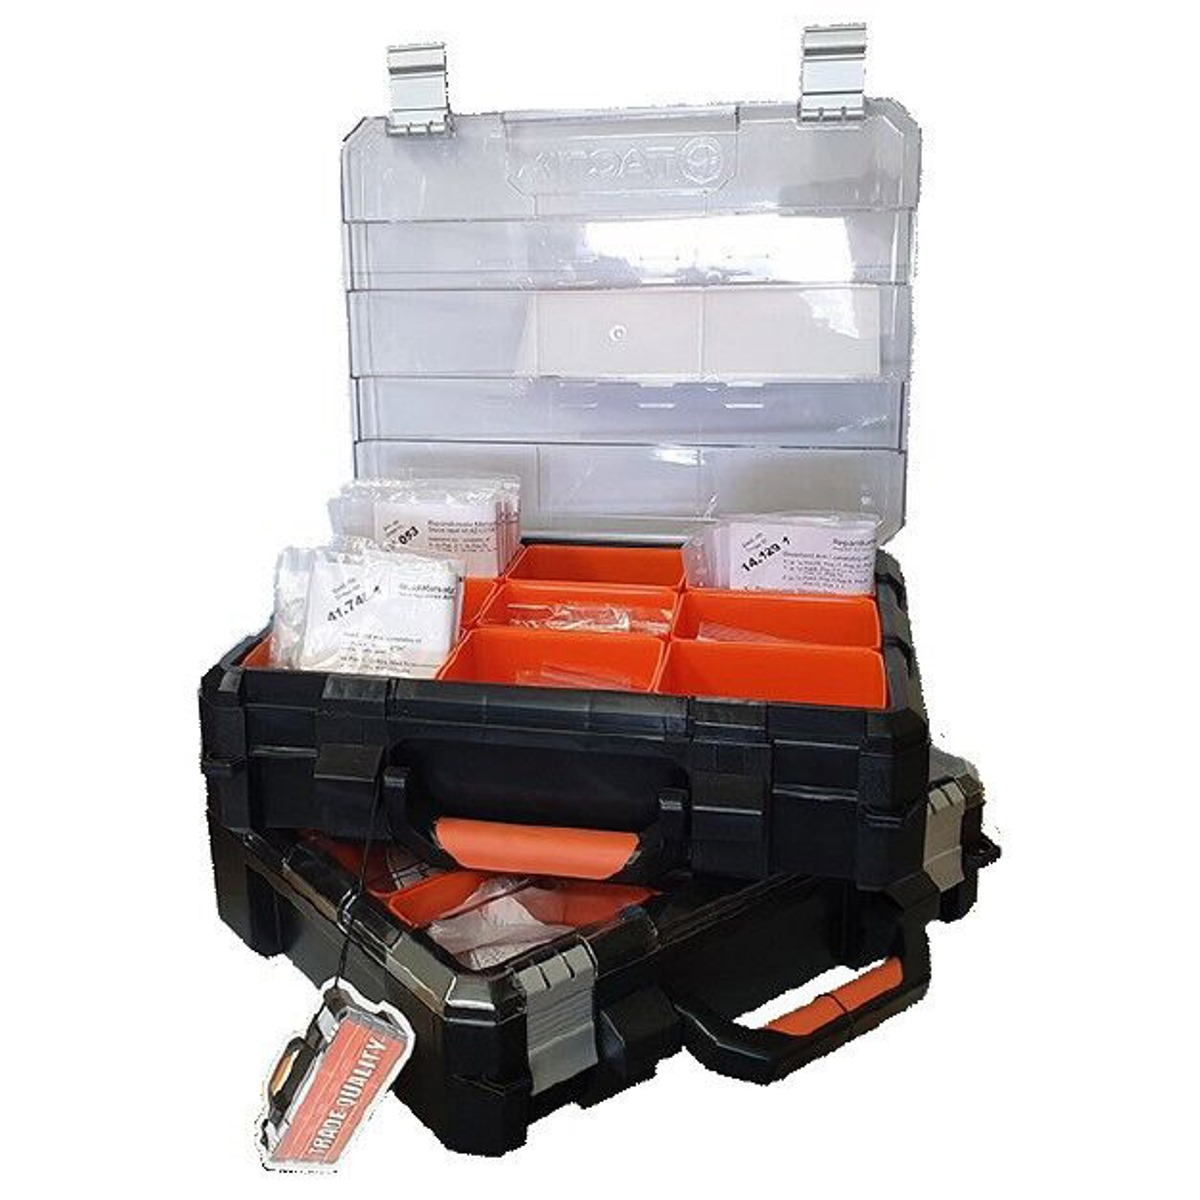 23500  Kranzle Service Kit includes Parts andamp Tool Box